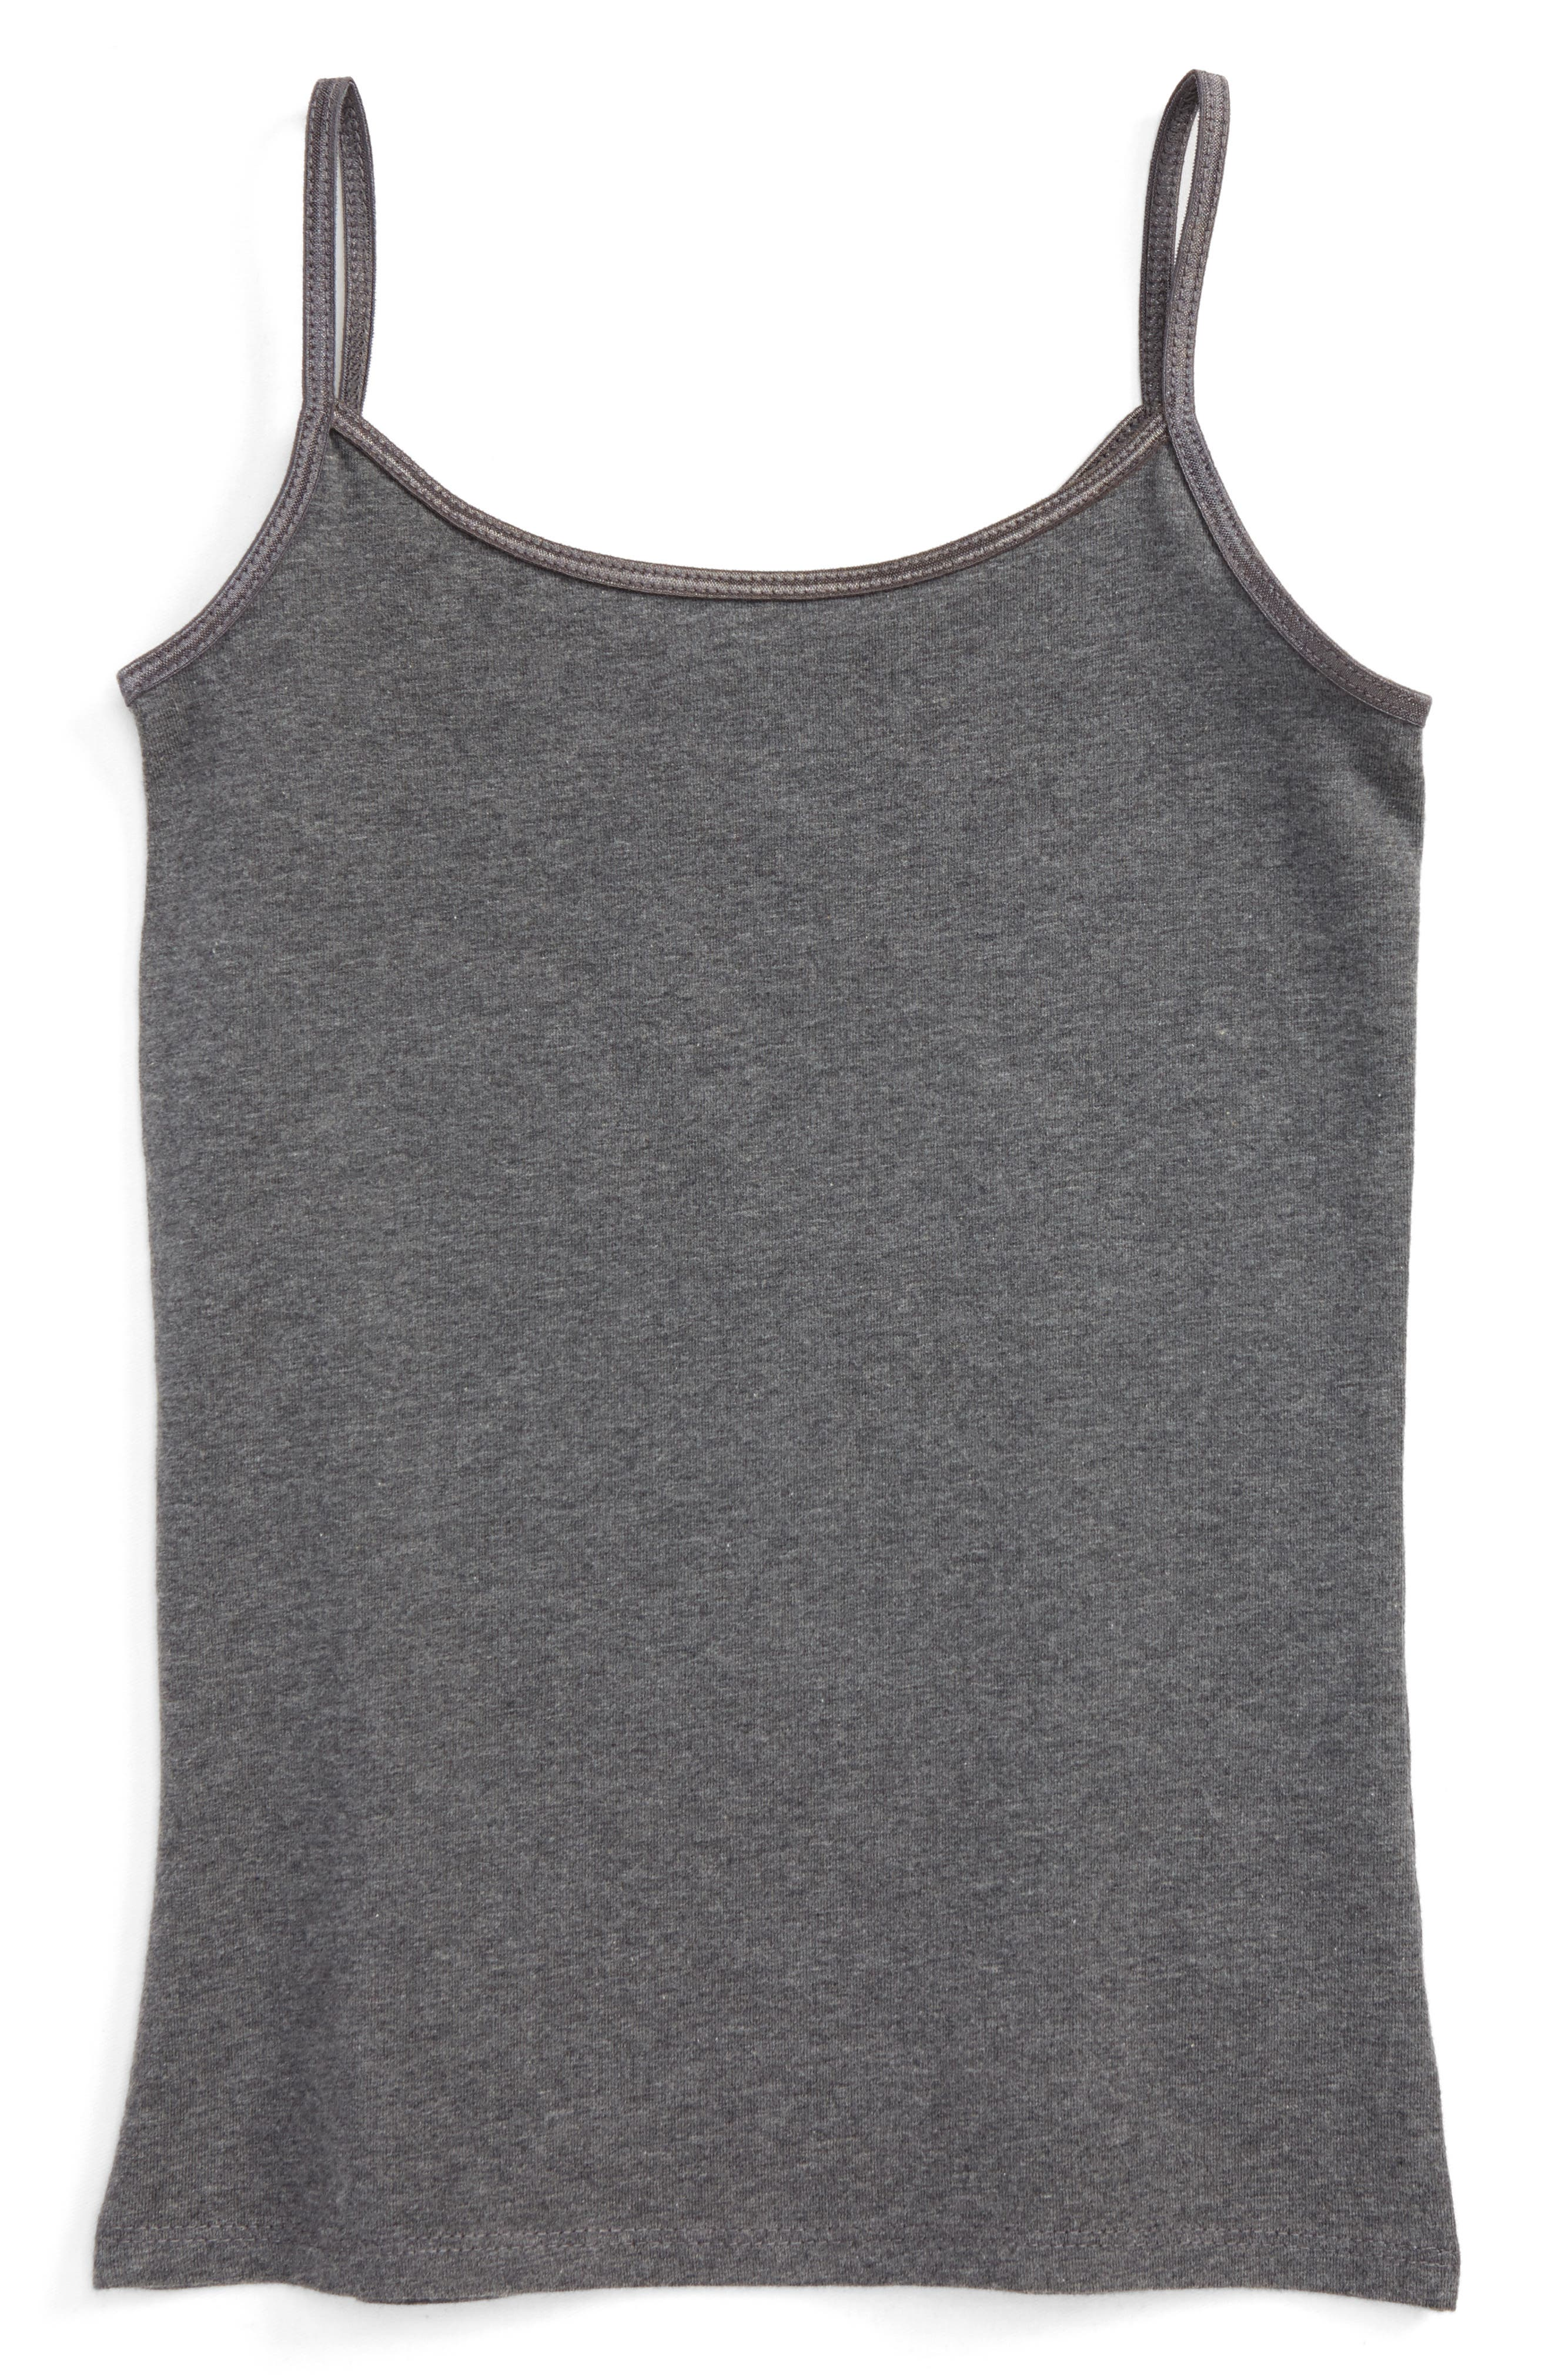 Heathered Long Camisole,                             Main thumbnail 1, color,                             Grey Charcoal Heather